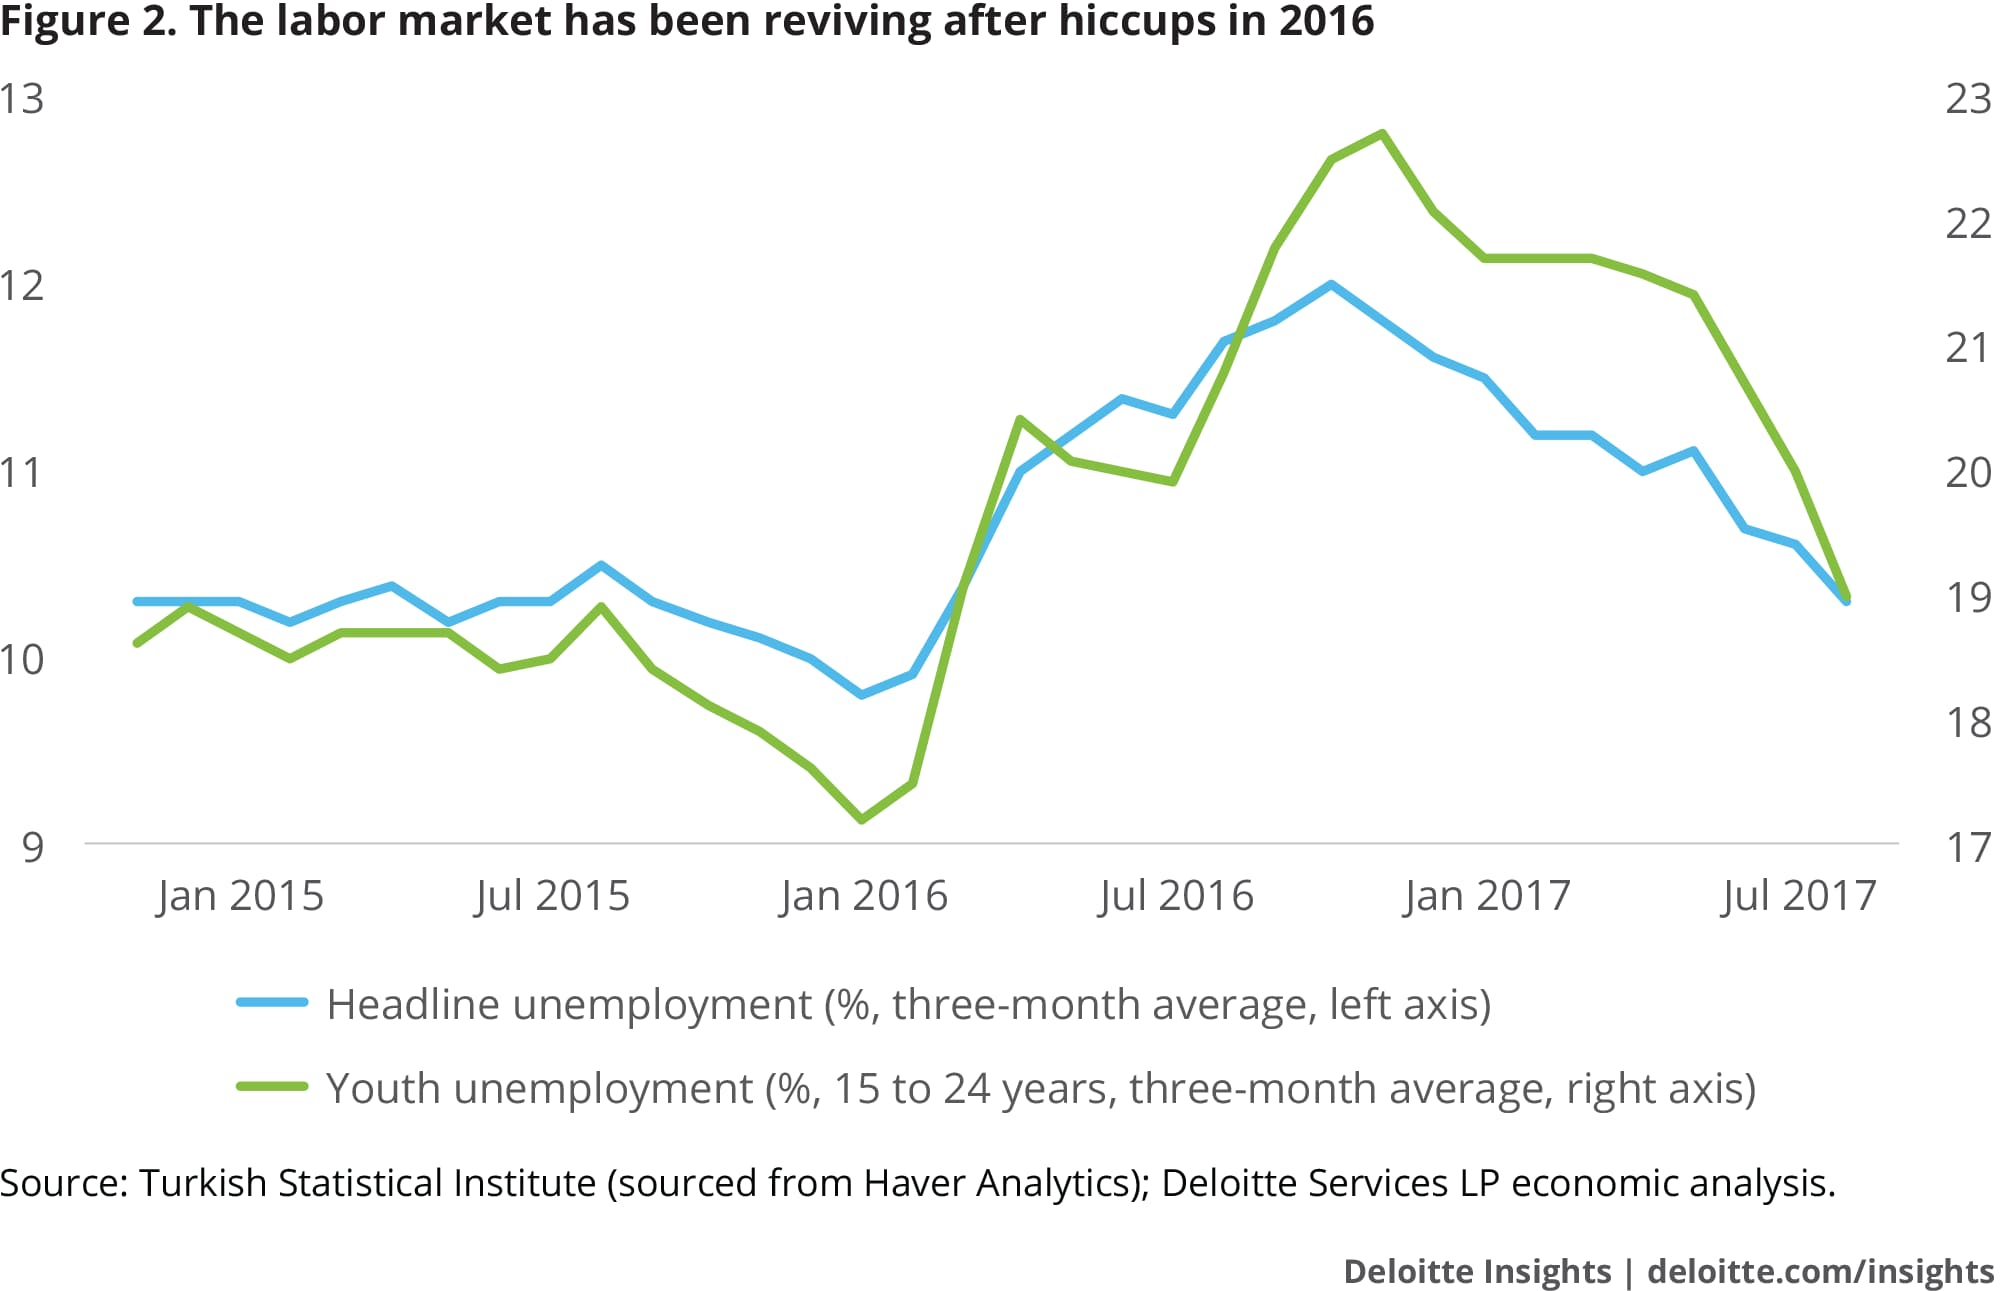 The labor market has been reviving after hiccups in 2016